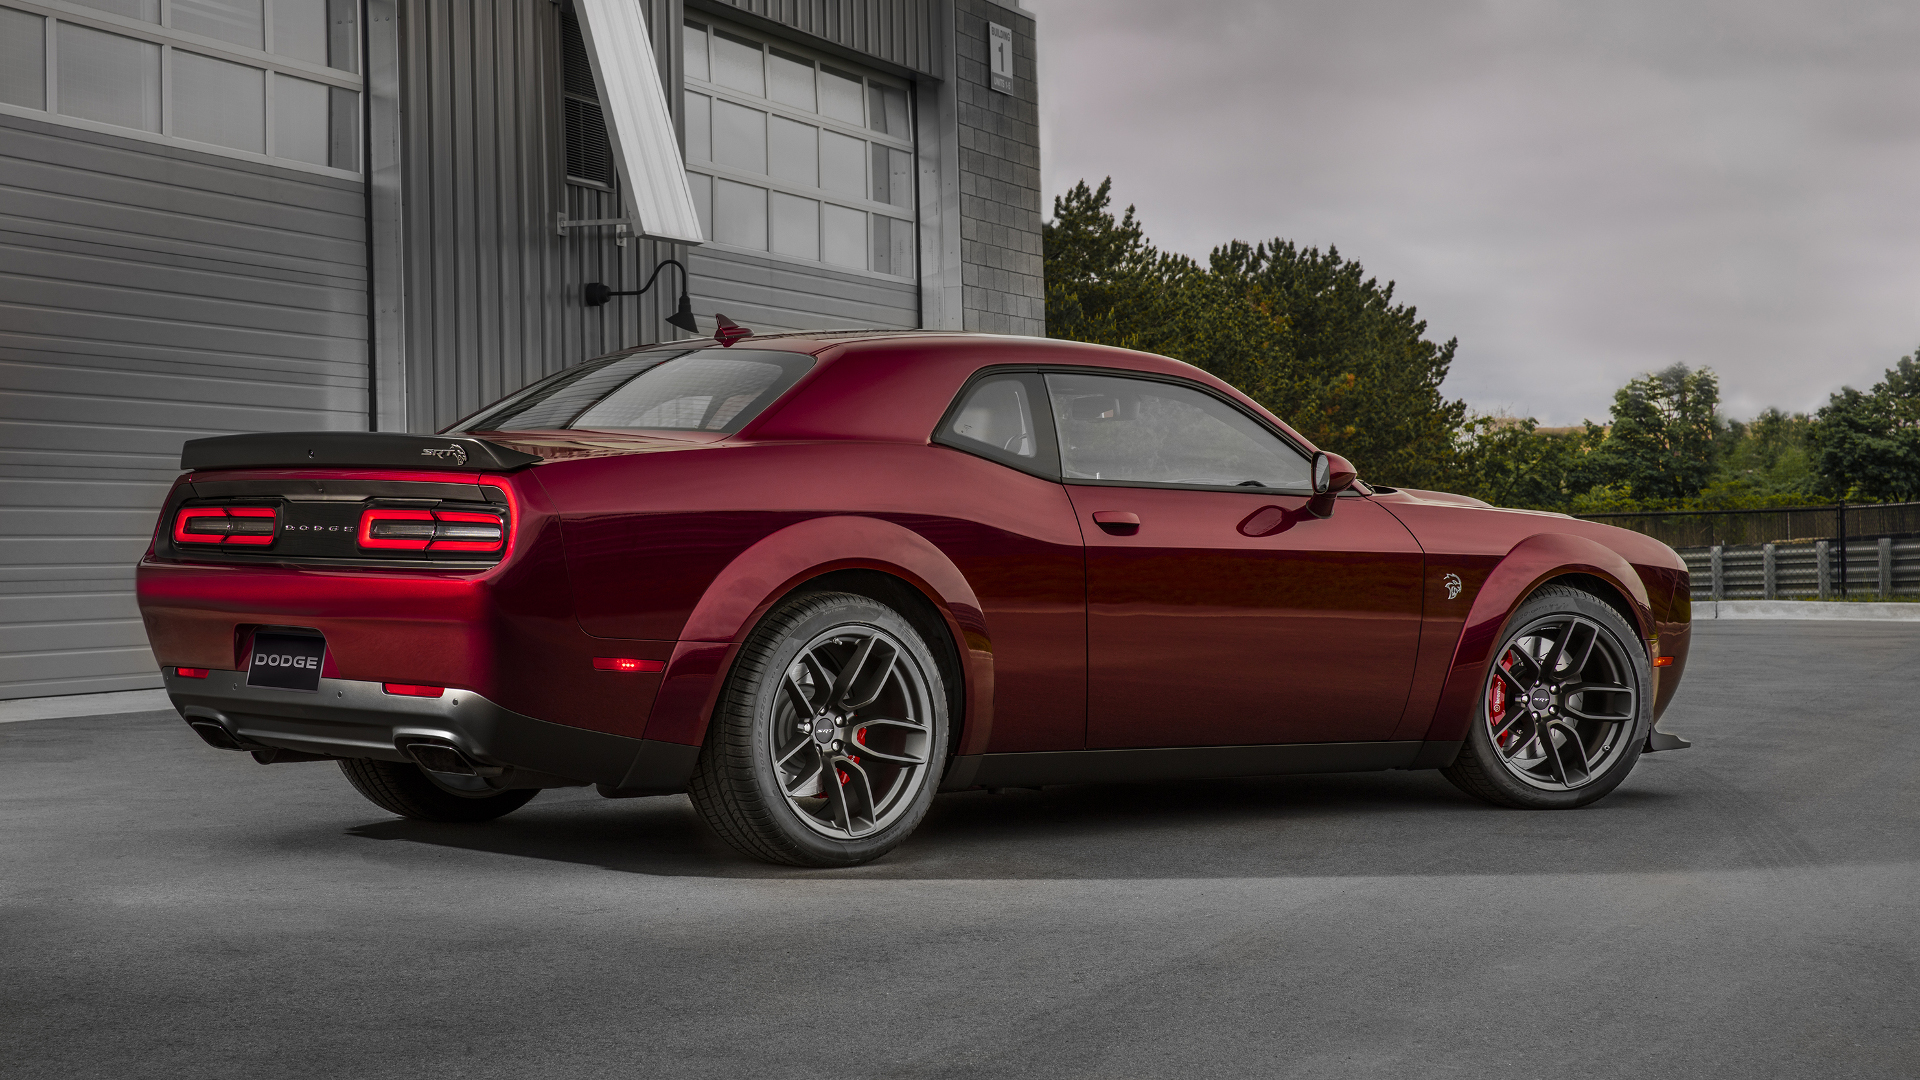 The Dodge Challenger Srt Hellcat Widebody Is A Cheaper Dodge